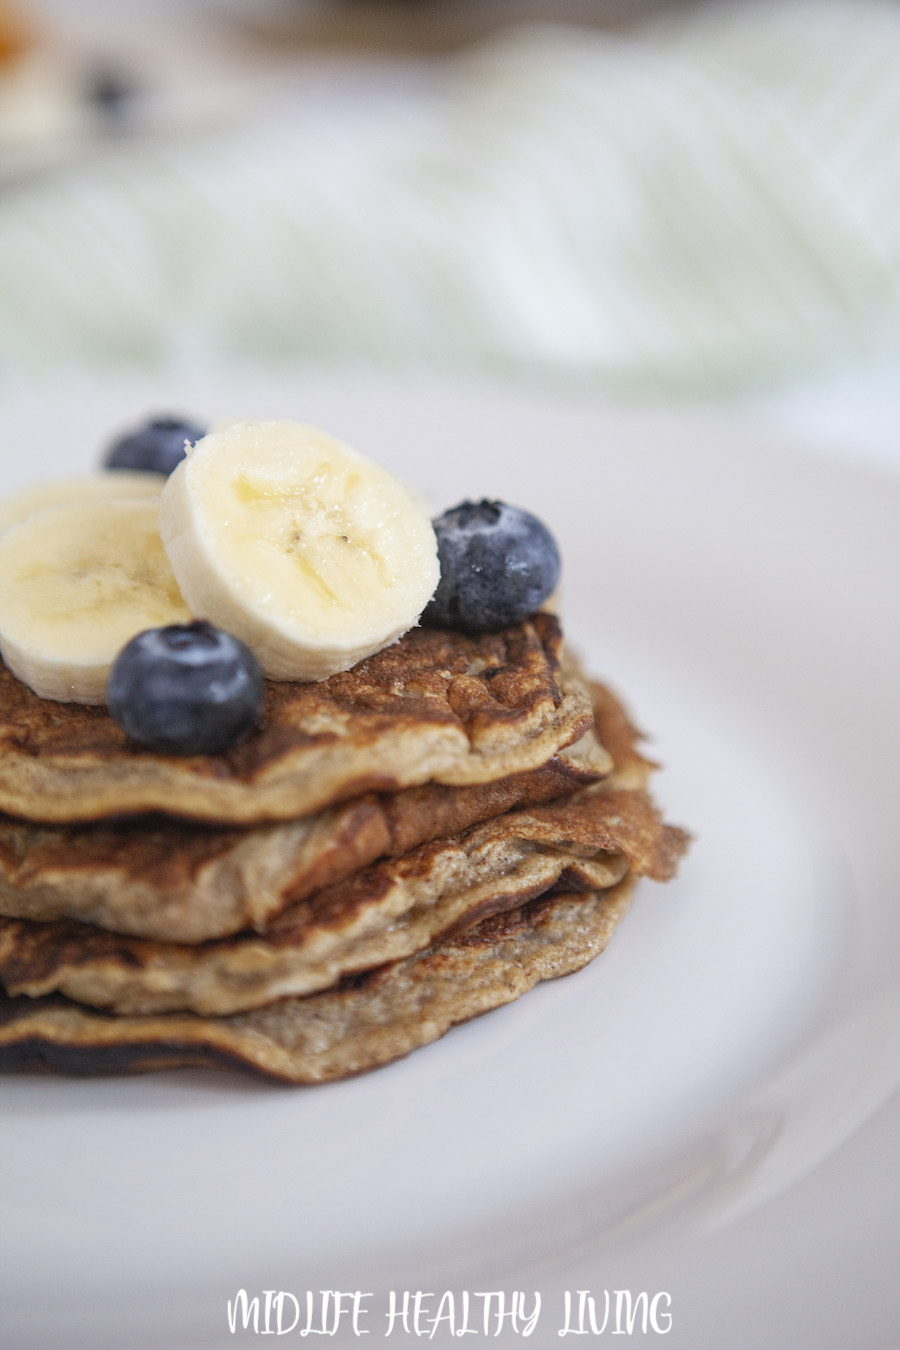 Here we see a stack of the ww banana pancakes ready to eat.